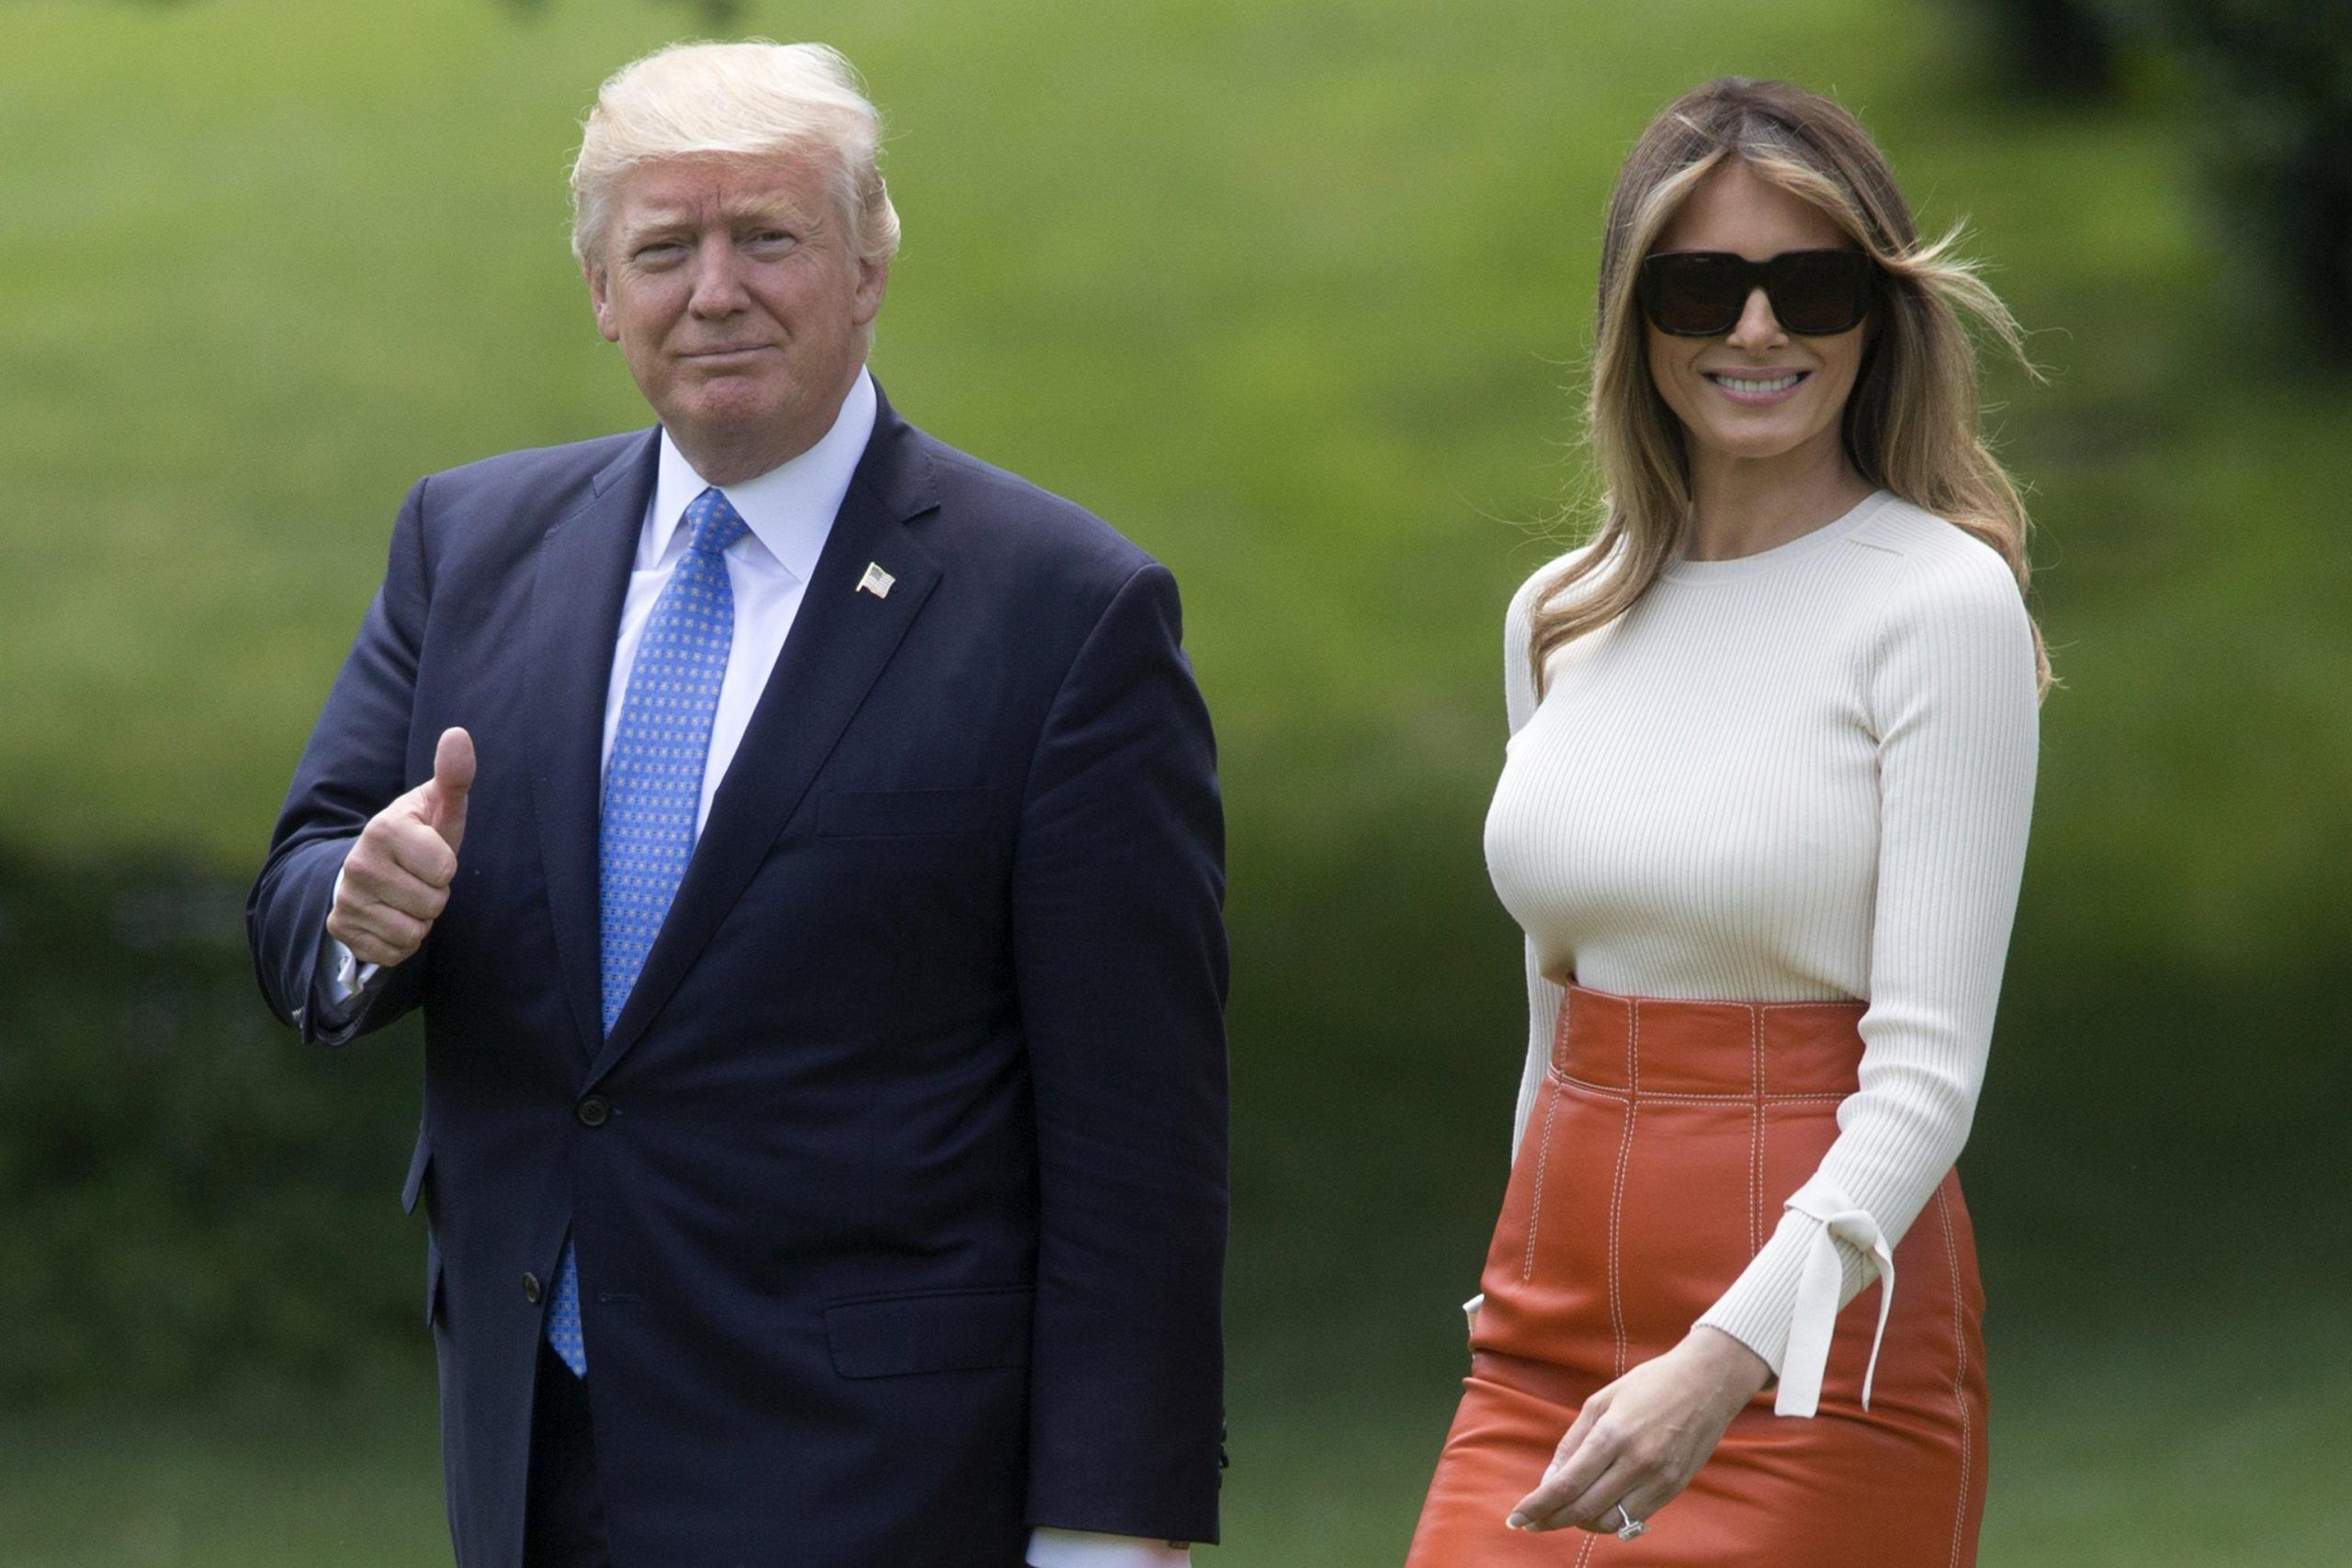 US President Donald J. Trump departs the South Lawn of the White House